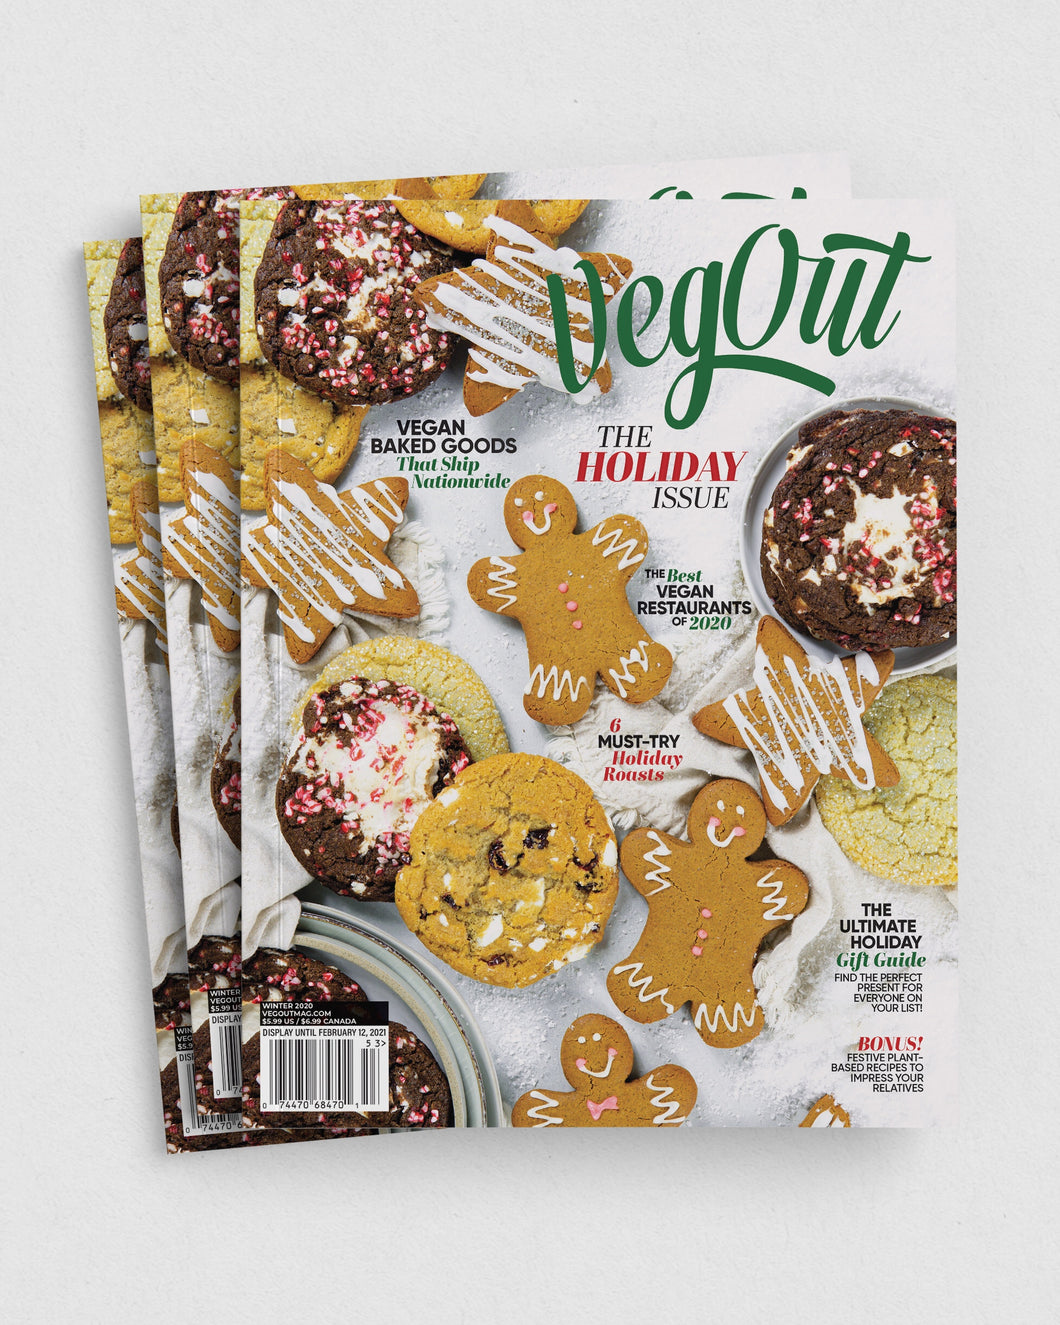 1 Year VegOut Magazine Subscription